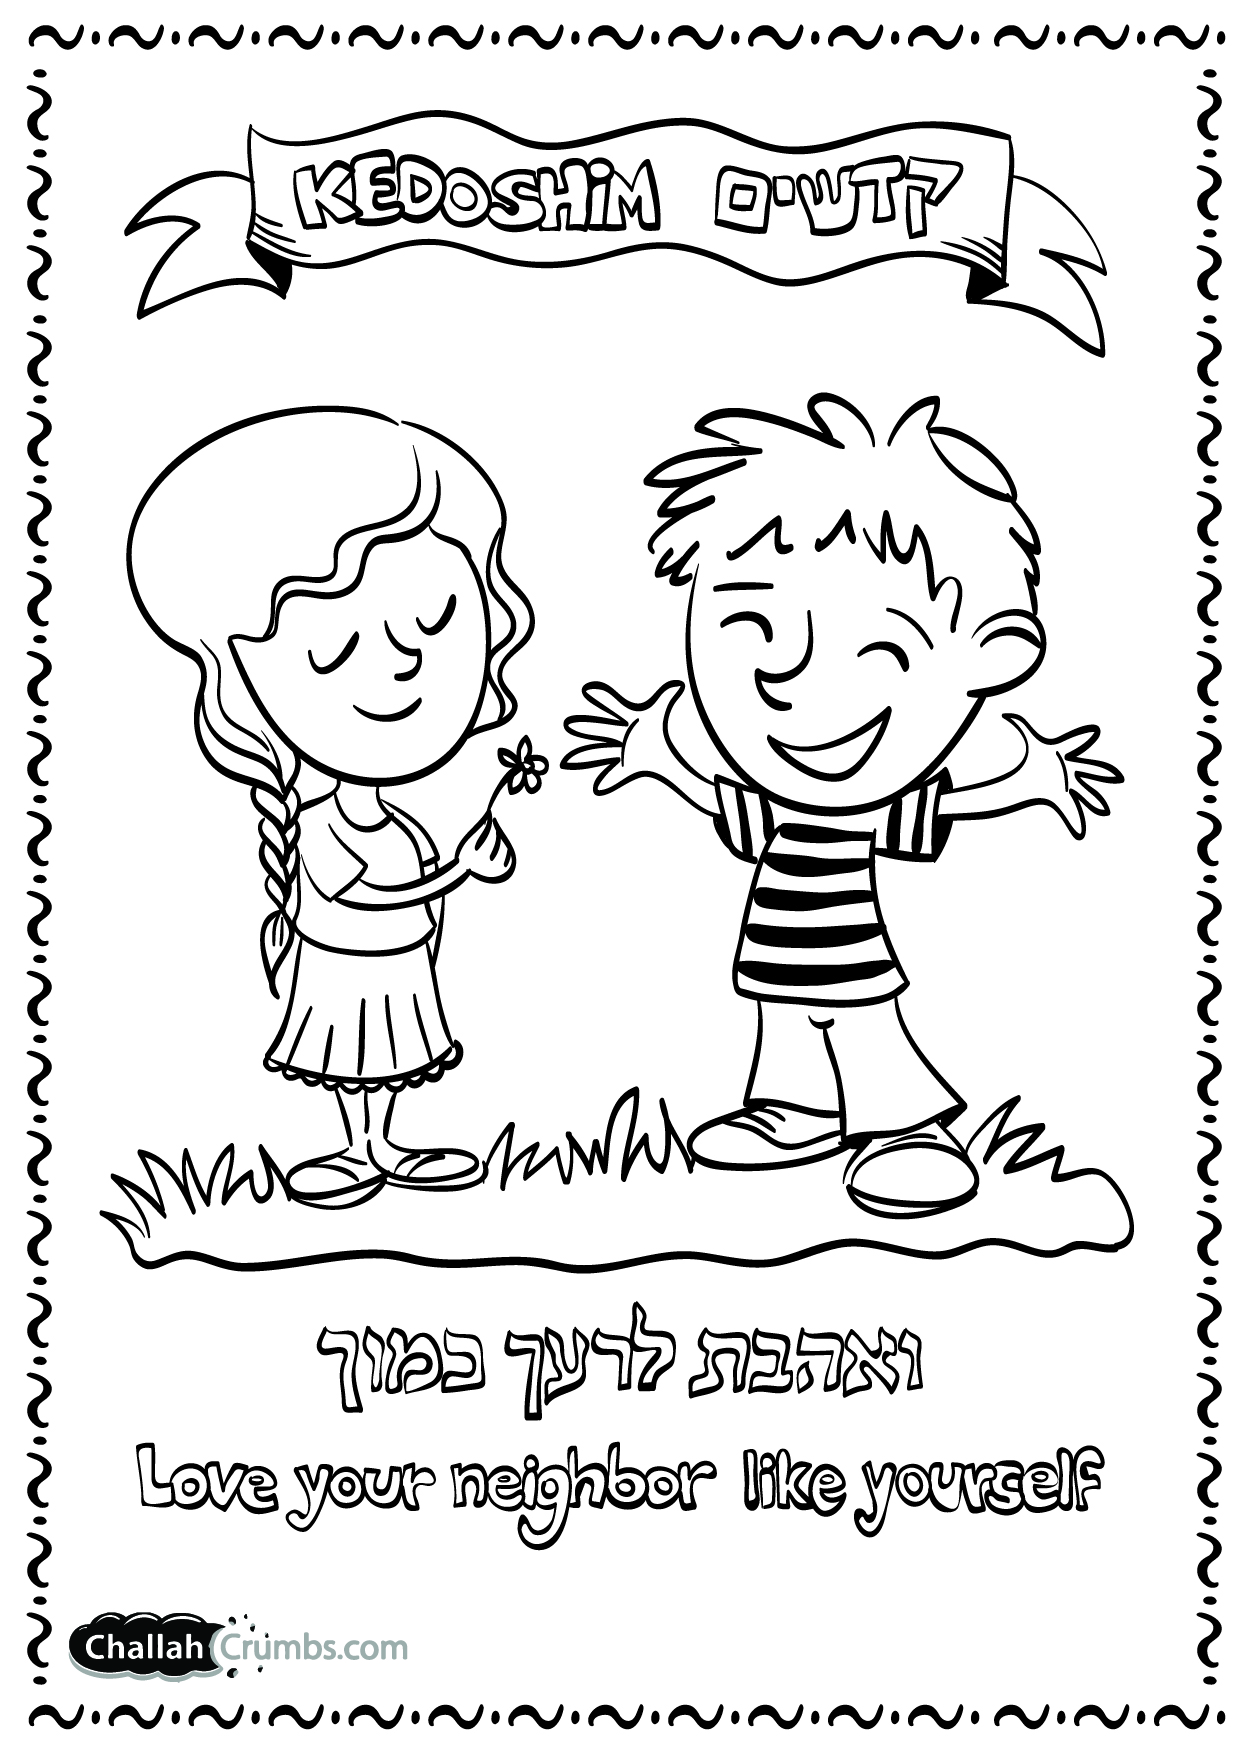 ushpizin coloring page click on page to print challah crumbs